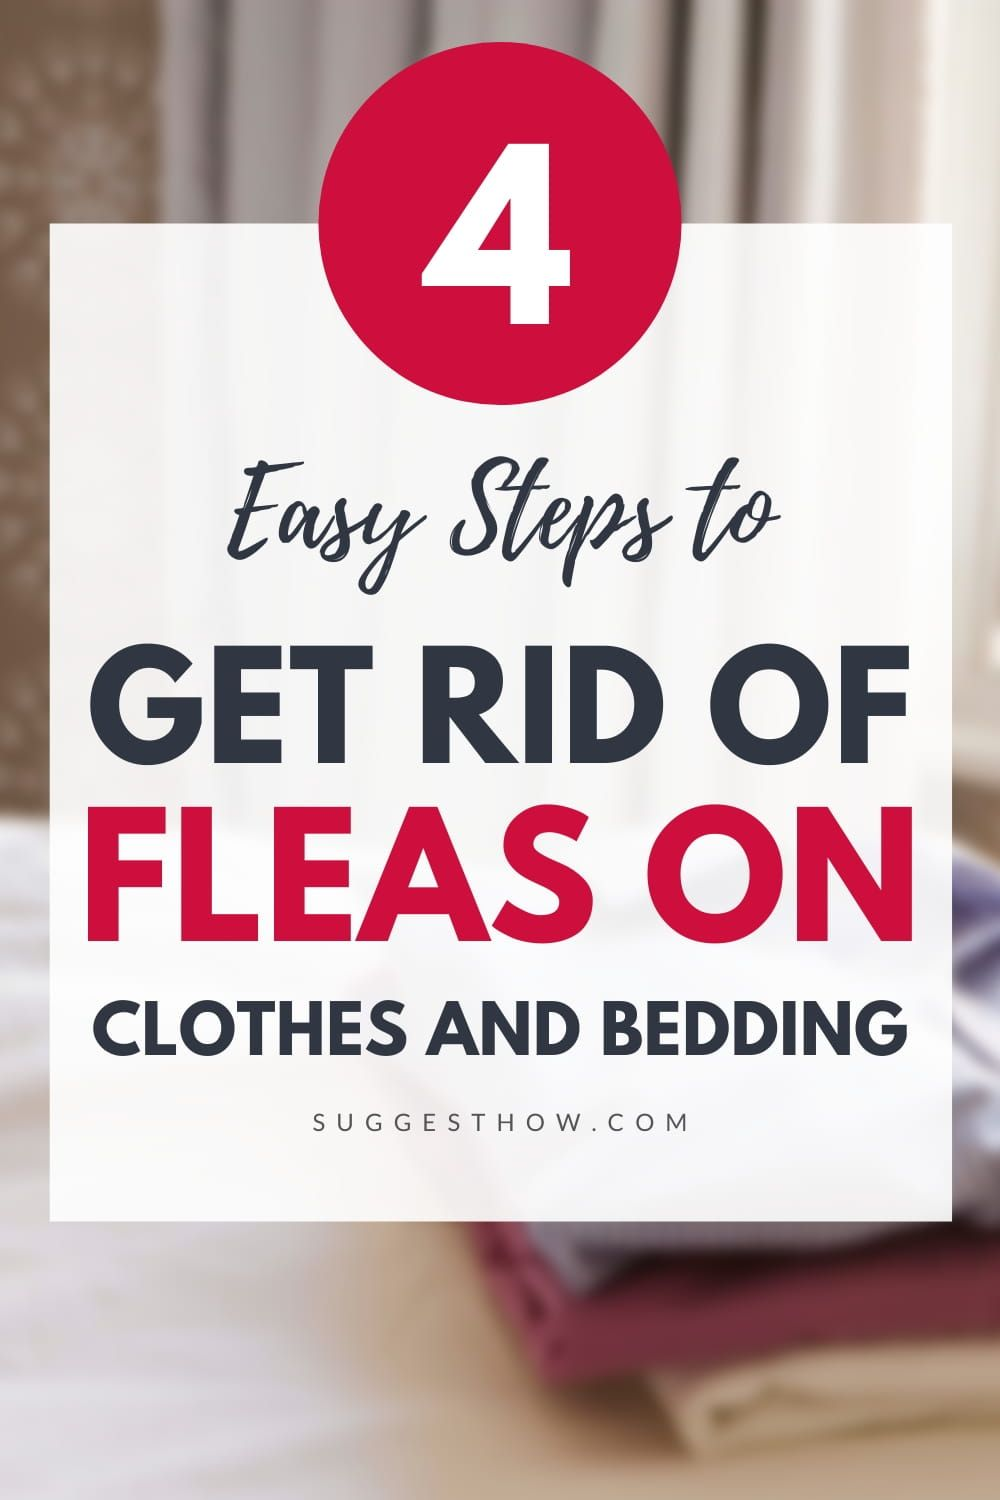 How To Get Rid Of Fleas On Clothes And Bedding In 2020 How To Get Rid Fleas Rid